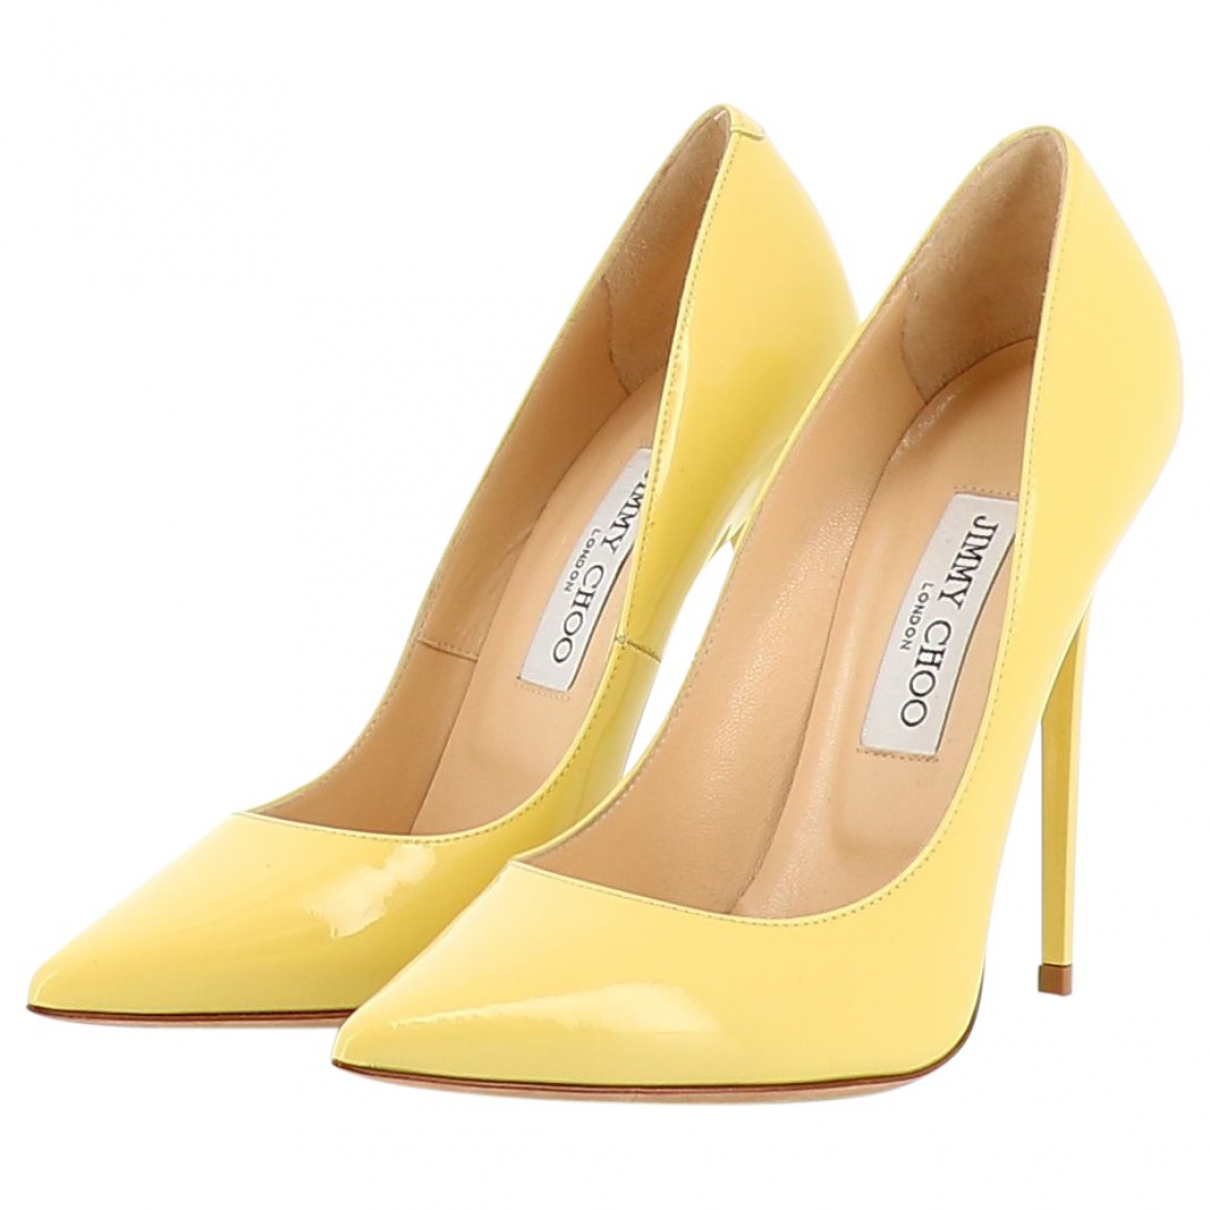 Jimmy Choo \N Yellow Leather Heels for Women 38 EU